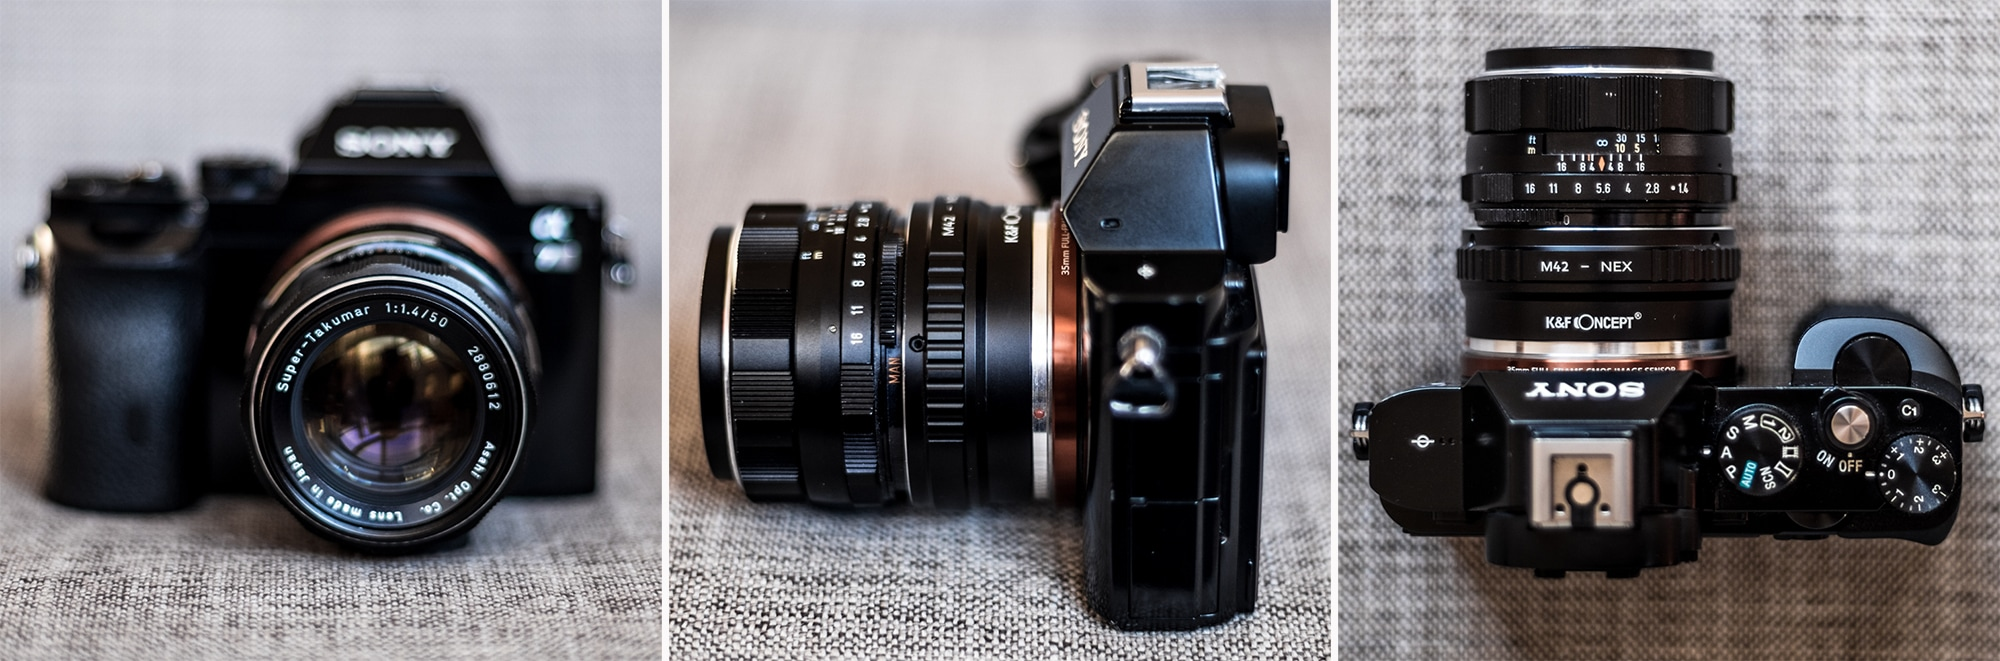 super takumar sony a7 review